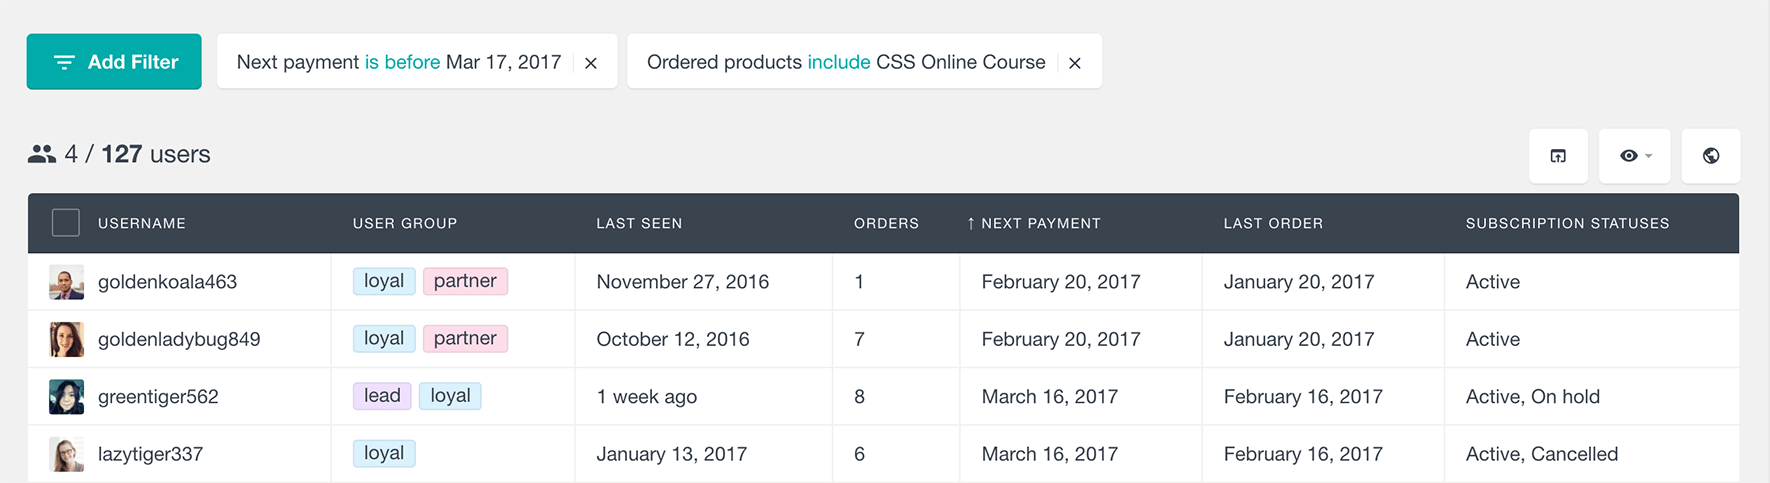 woocommerce subscriptions next payment product